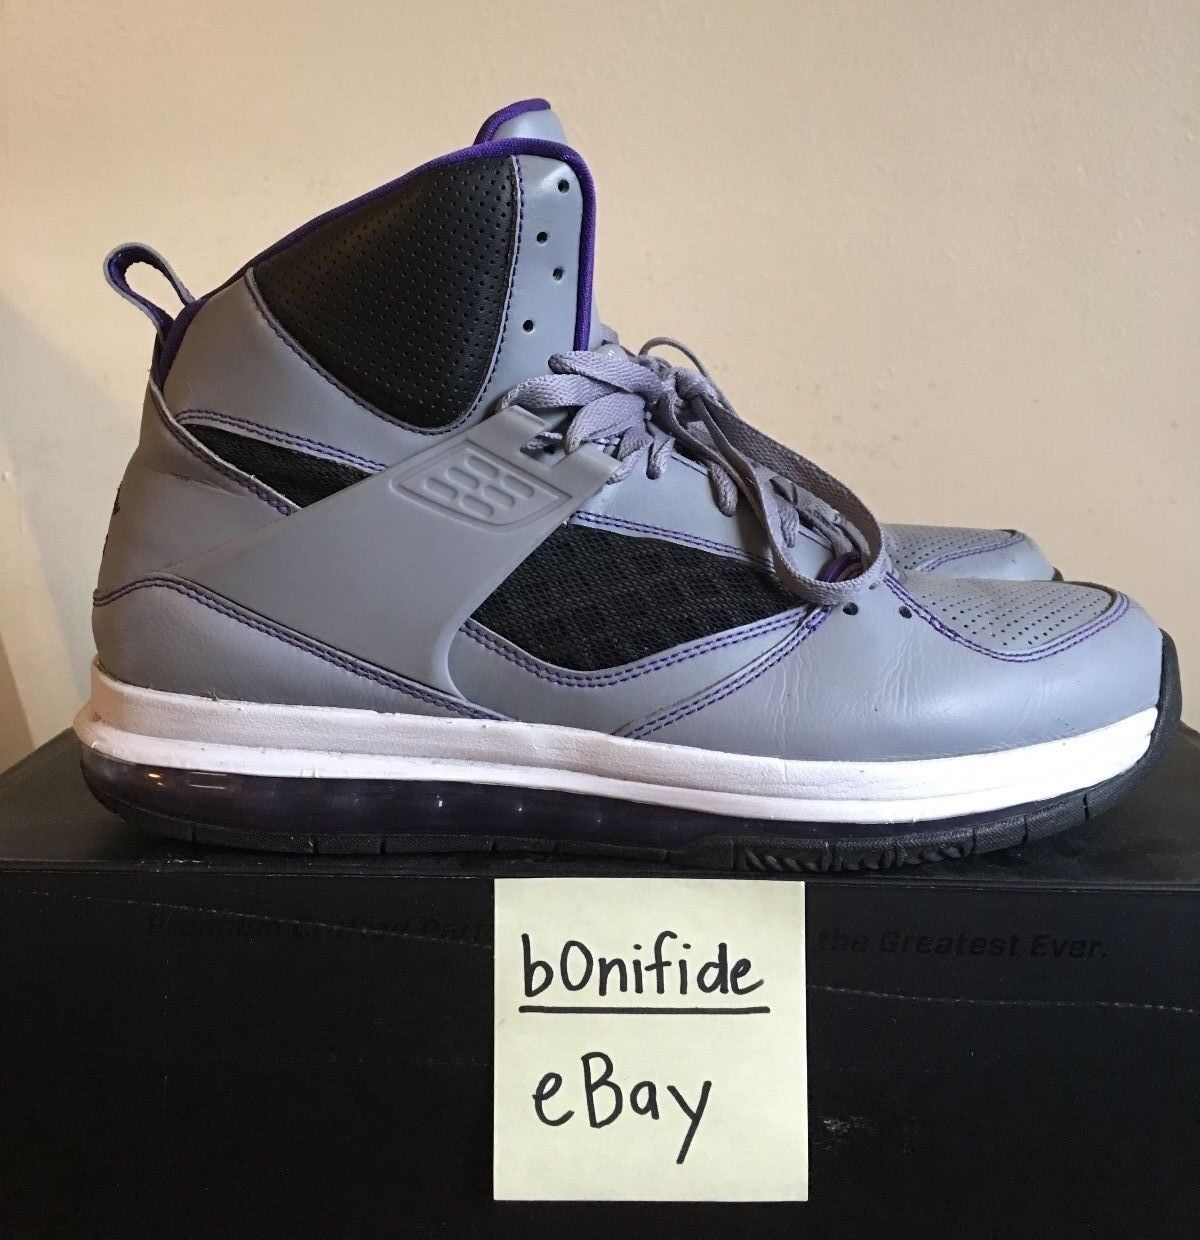 Jordan Flight 45 High Max Comfortable best-selling model of the brand